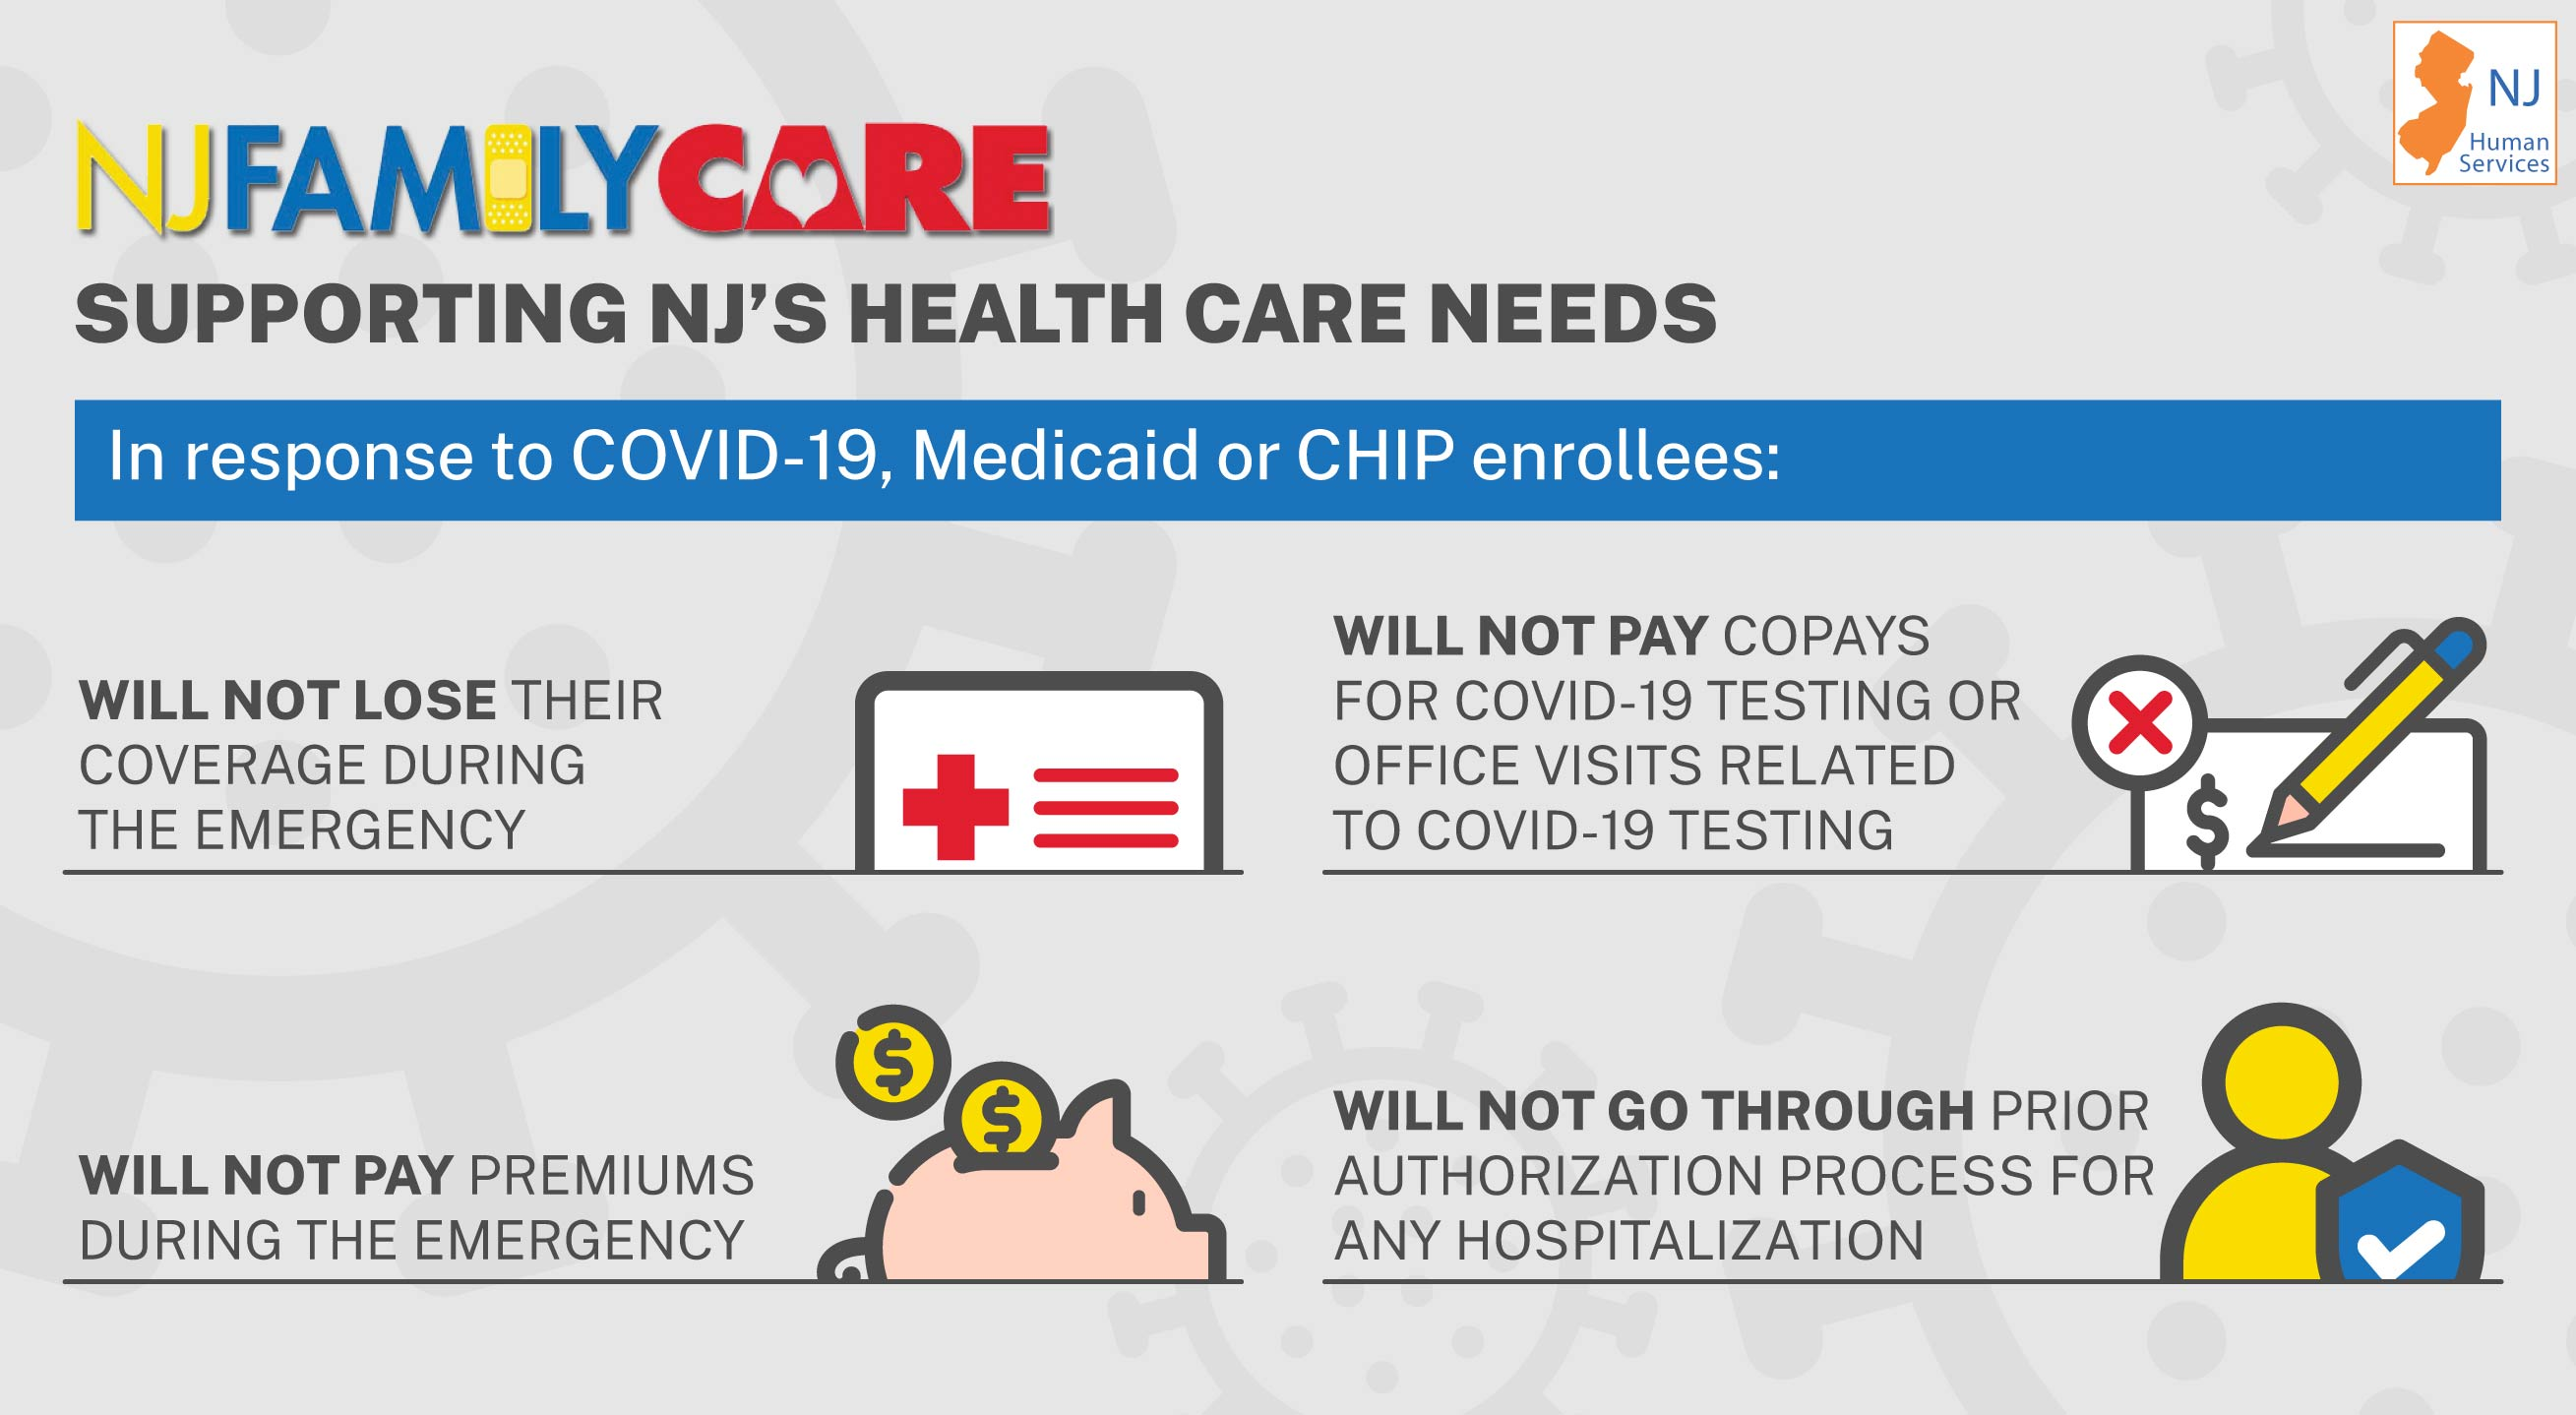 NJ FamilyCare Supporting New Jerseyans' Health Care Needs During the Covid-19 Emergency